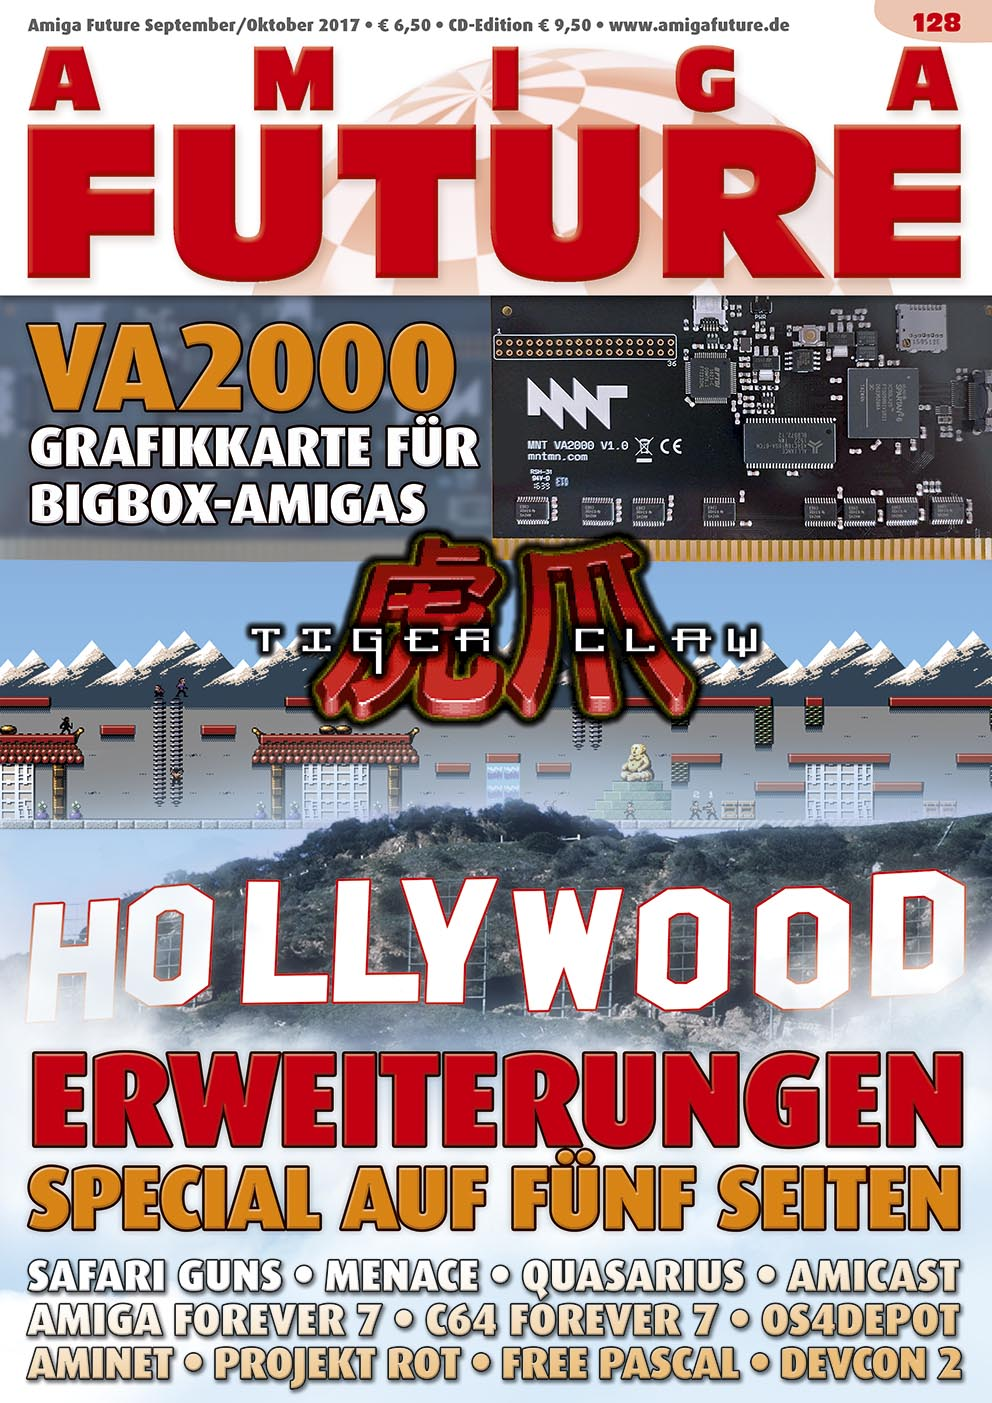 Amiga Future Issue 128